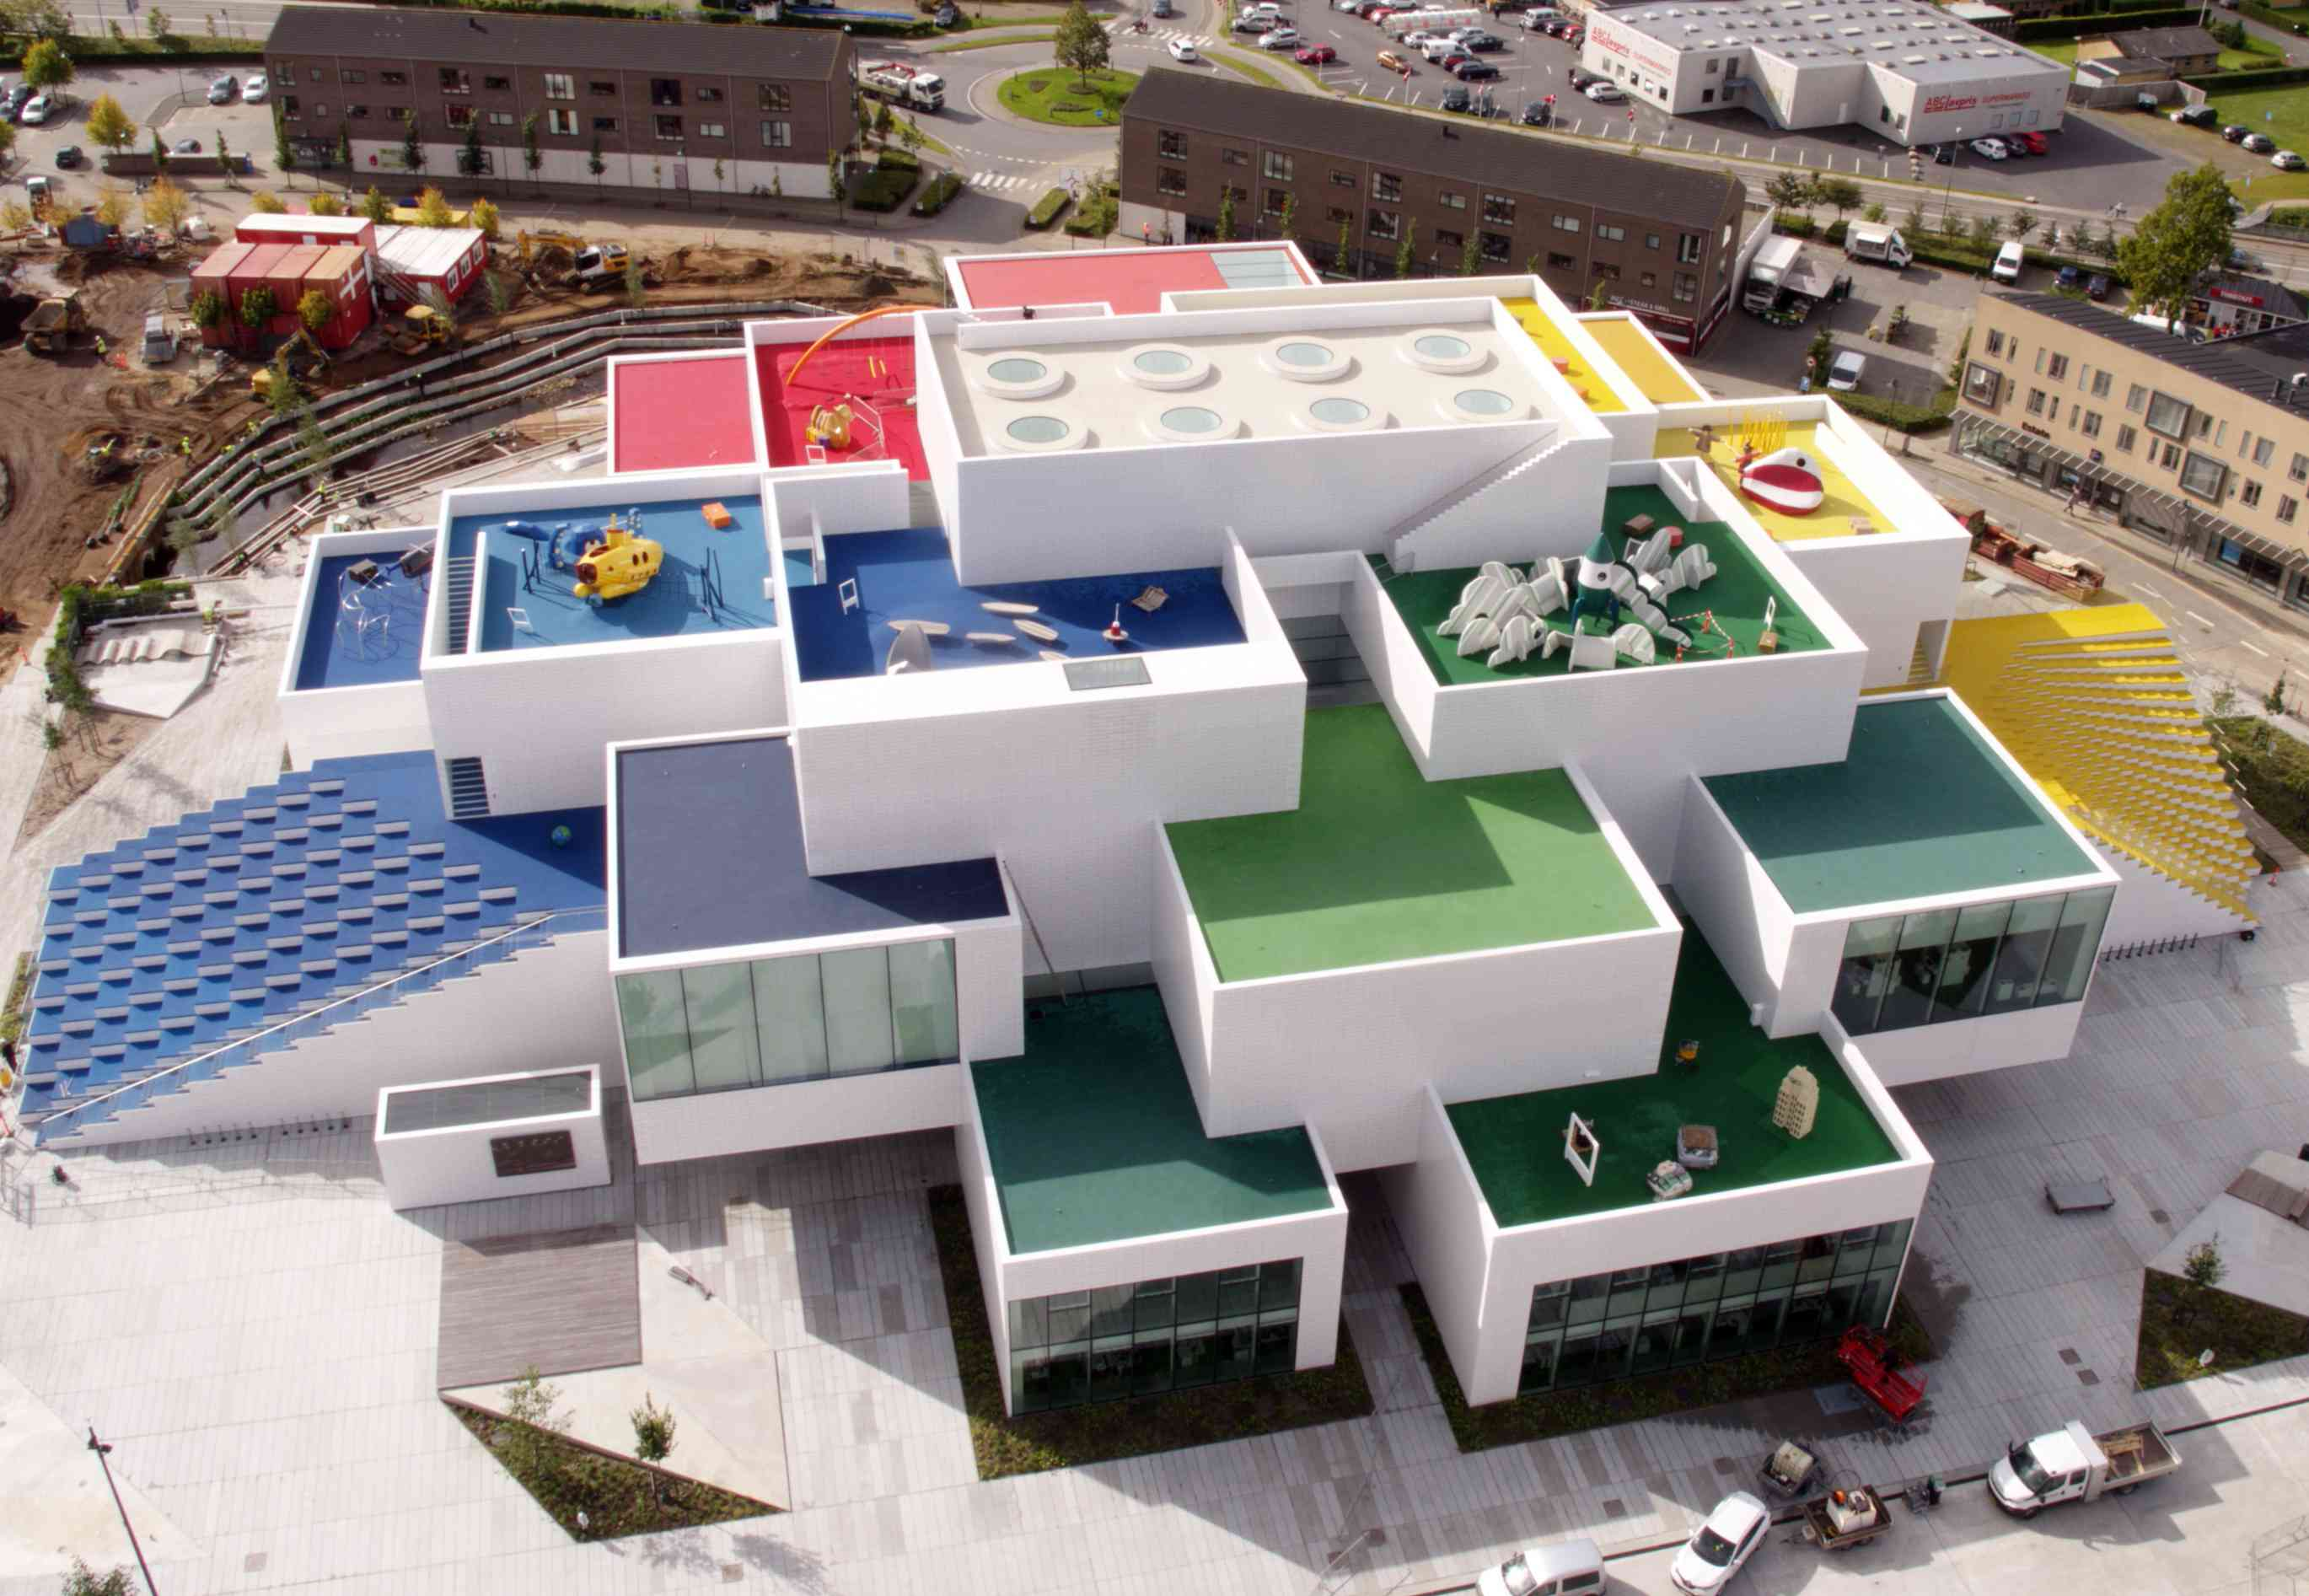 Exterior of LEGO House pictured ahead of grand opening, Sept. 2017, Billund, Denmark